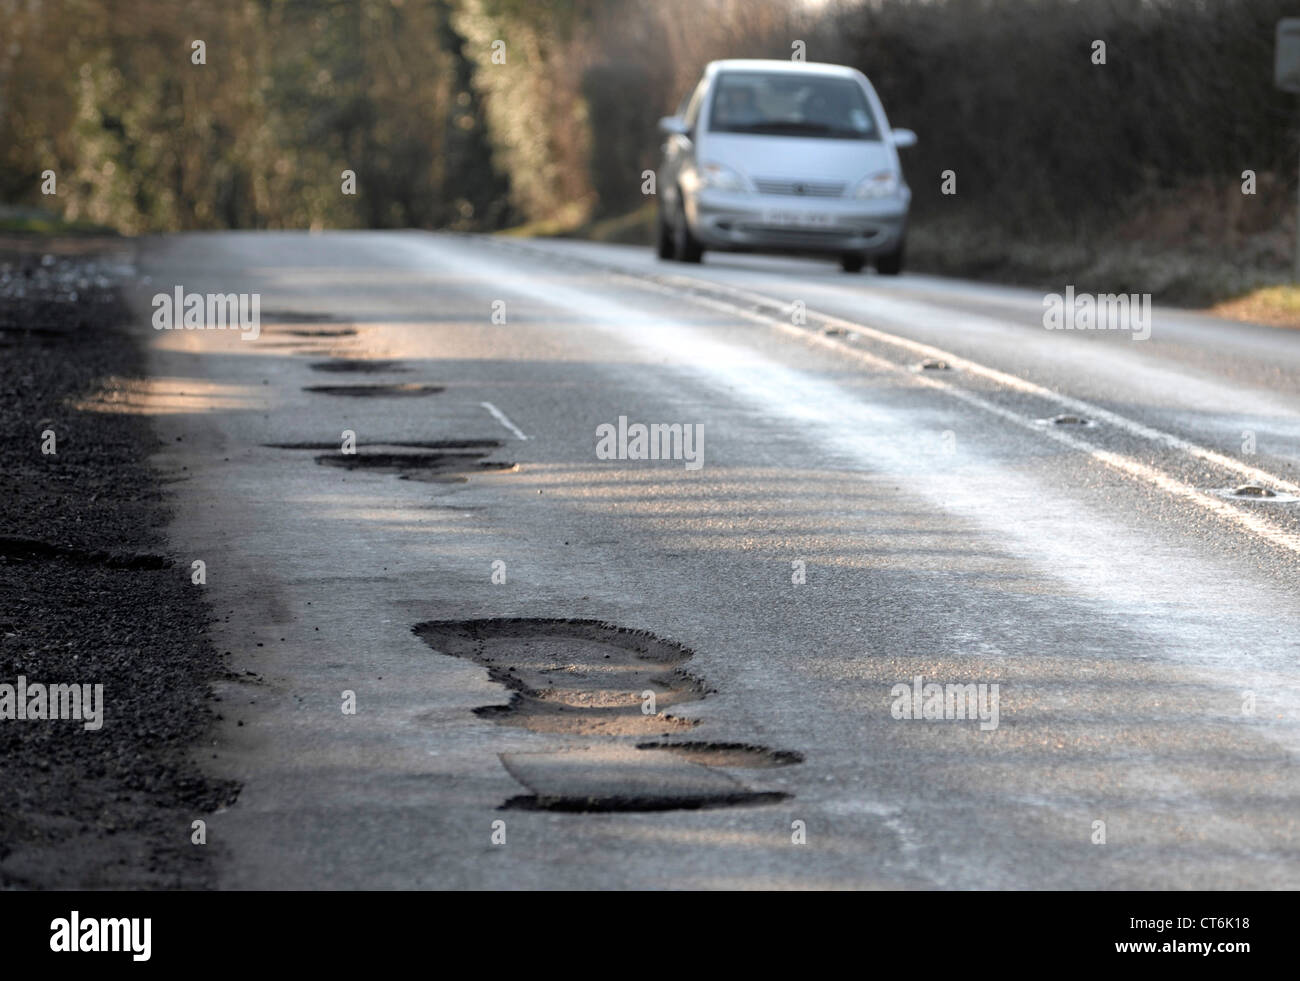 Potholes after winter weather on major roads cause damage to cars - Stock Image